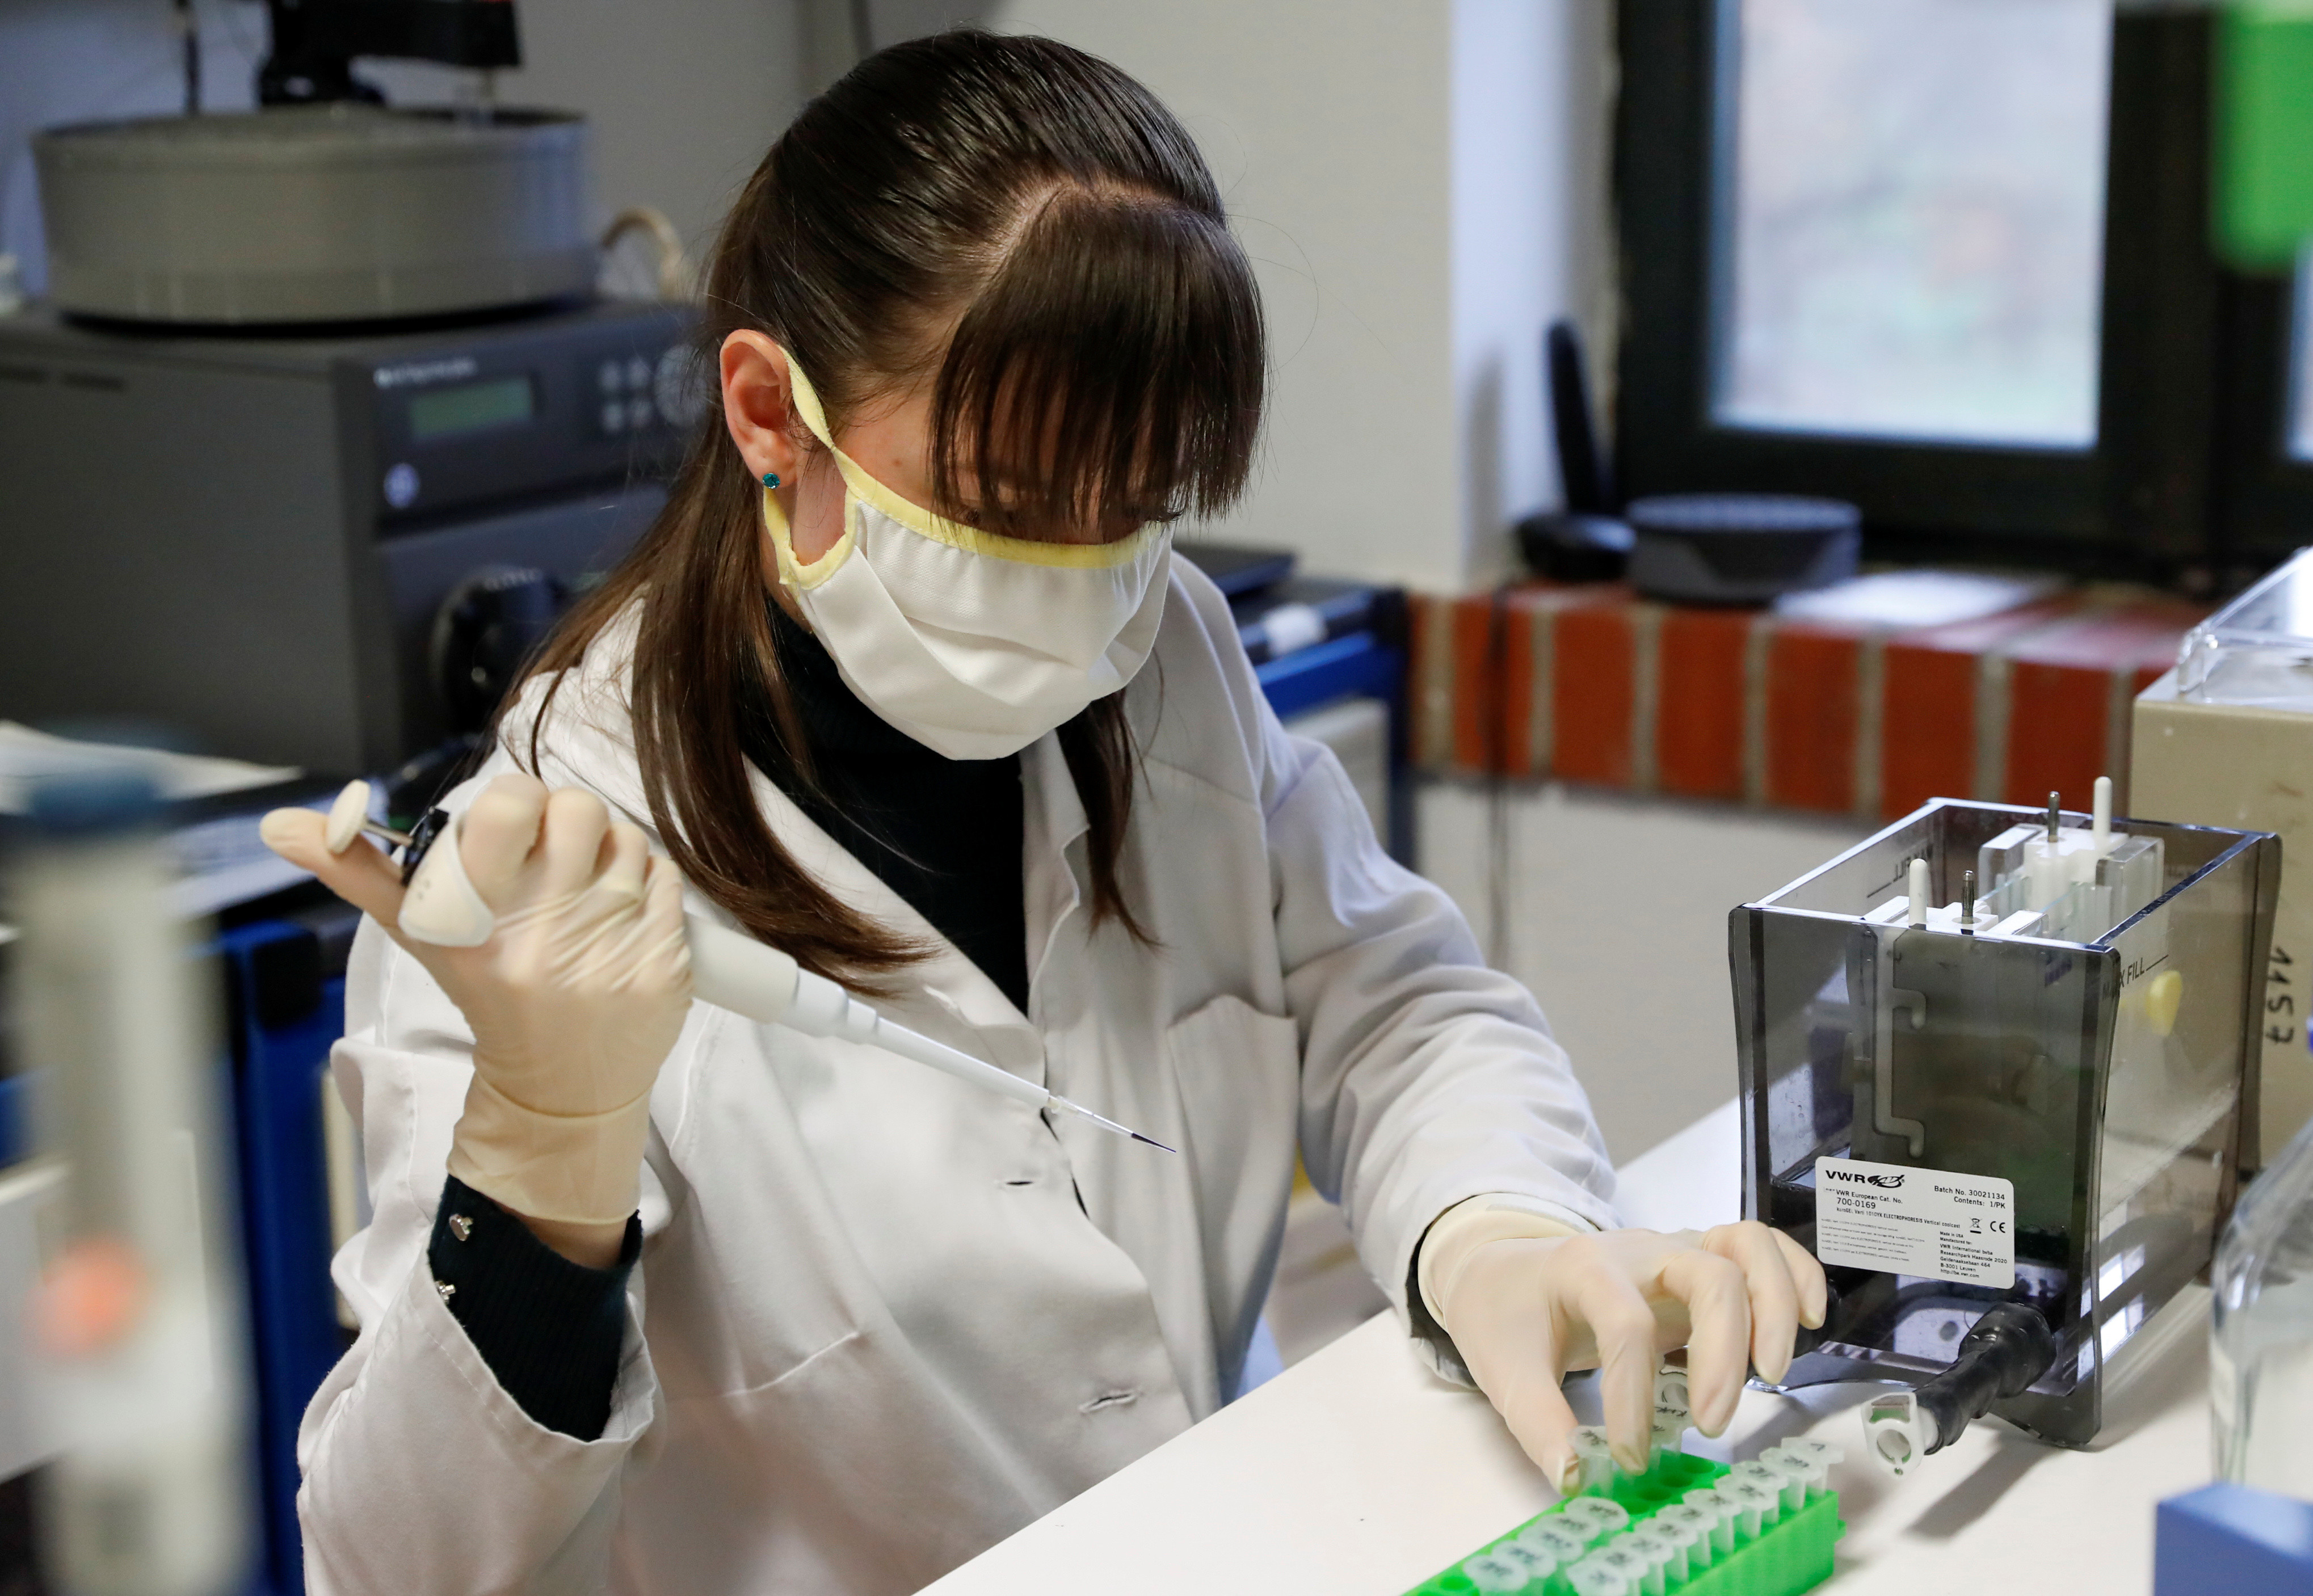 Hungarian biologist Alexandra Torok checks the purity of an antibody, a genetic sensor of sorts, manufactured by a small family company and sold to the largest pharmaceutical companies in the race for a coronavirus vaccine, in Szirak, Hungary, November 13, 2020. Picture taken November 13, 2020. REUTERS/Bernadett Szabo - RC2N3K9A4NQF